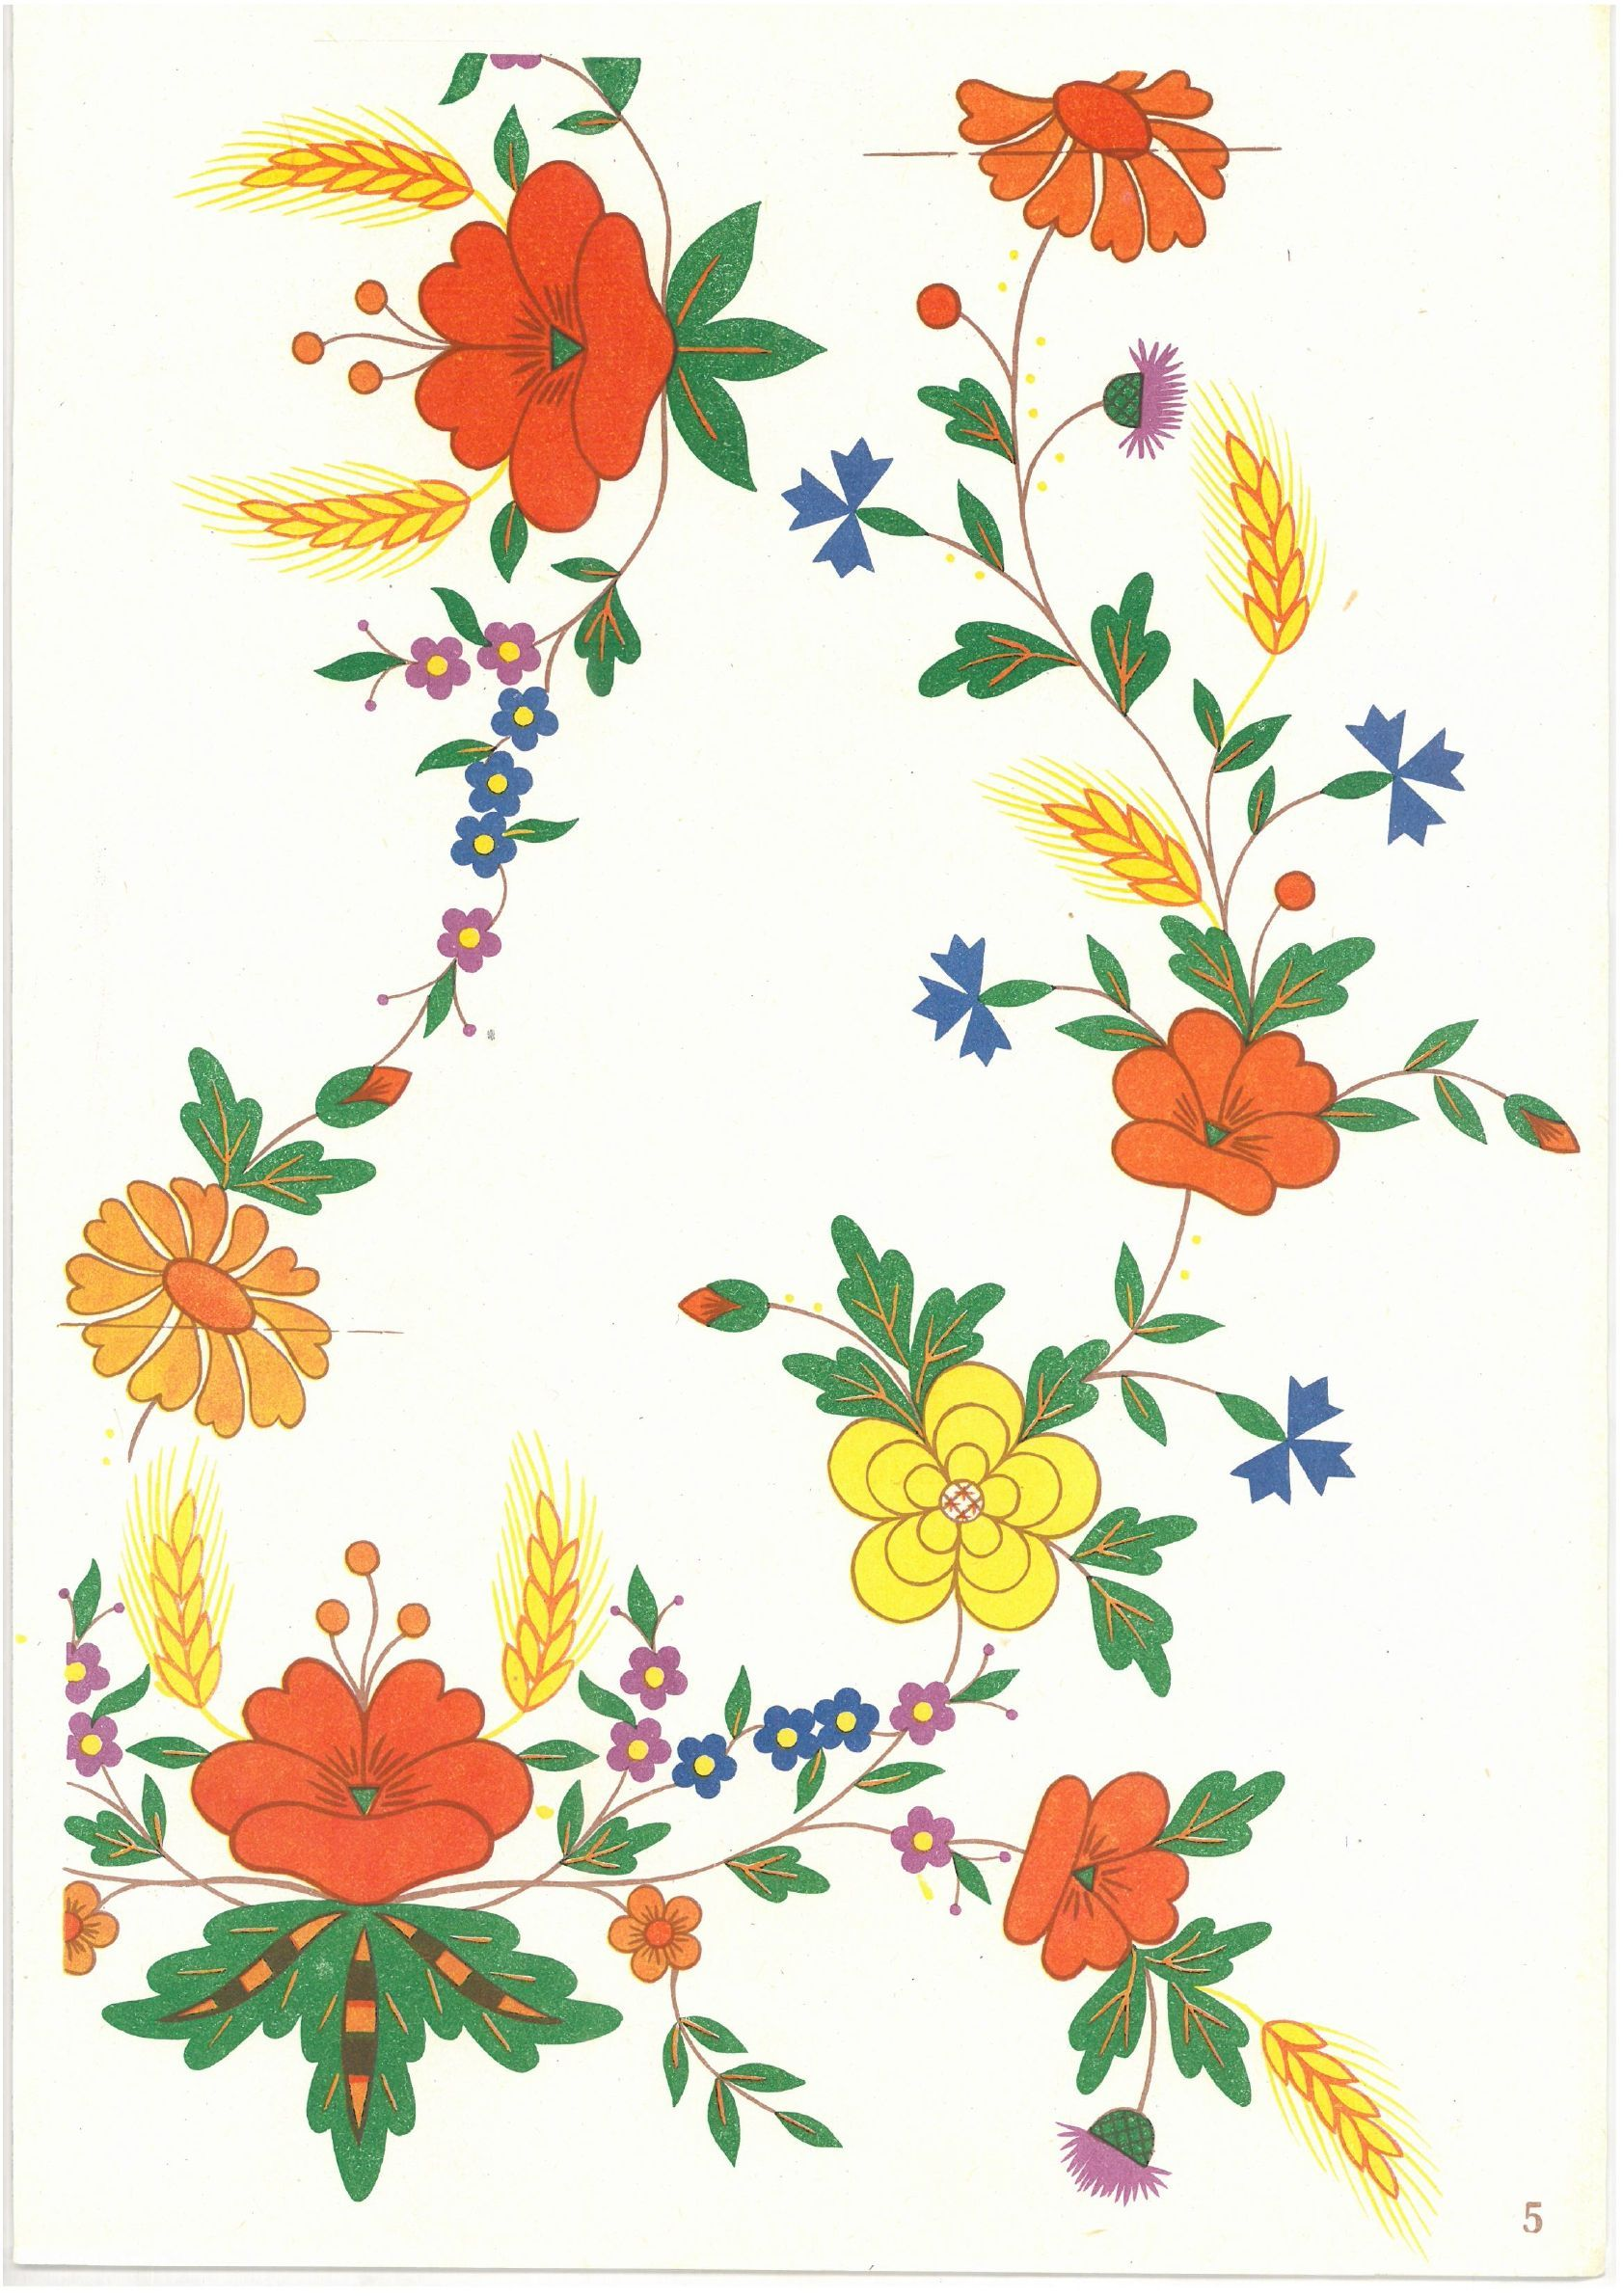 01154a60ca422577135e8174b7d8295d Jpg 1683 2381 Flower Prints Embroidery Embroidery Designs